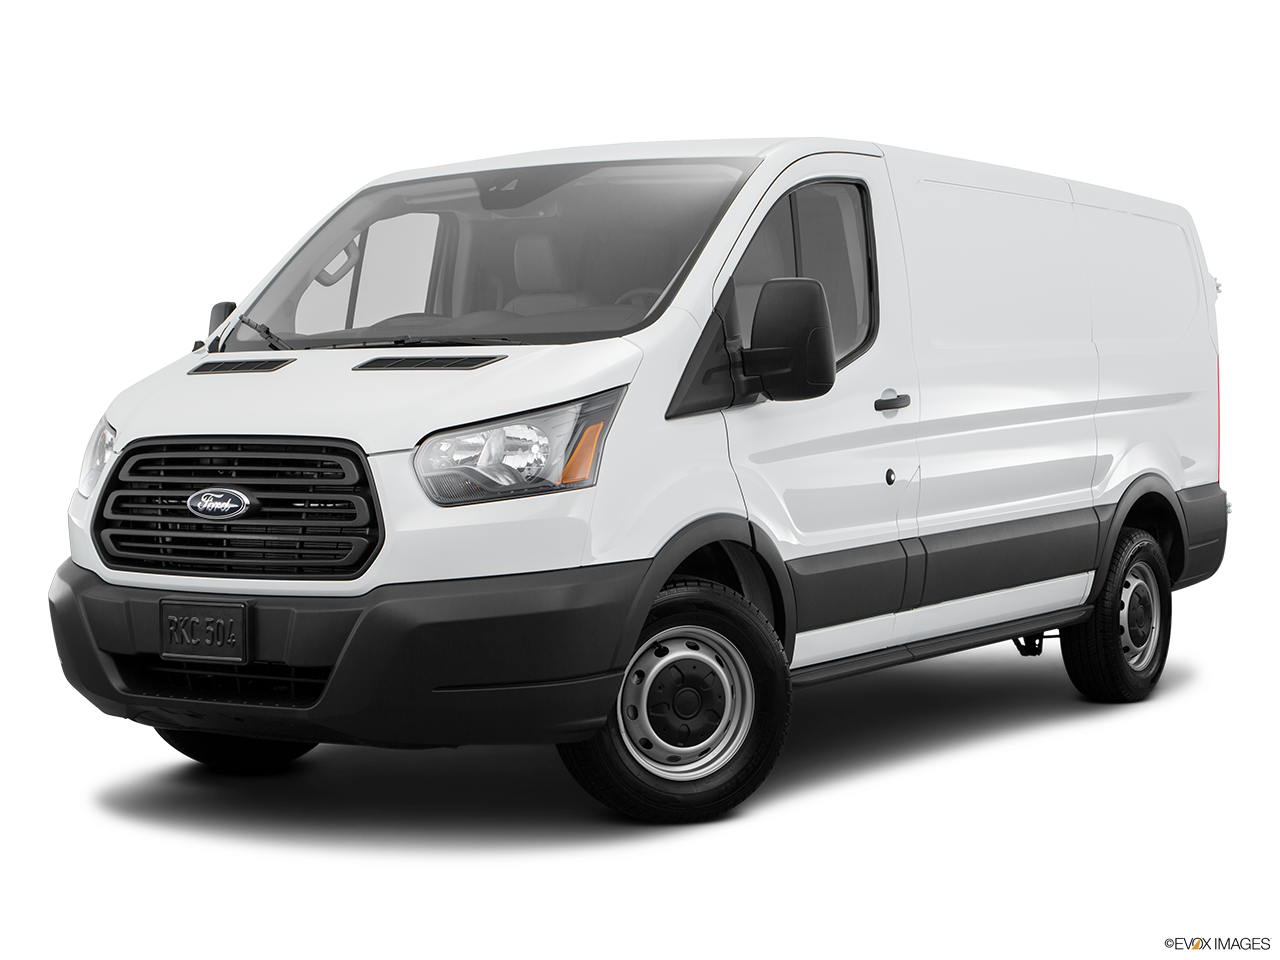 Test Drive A 2017 Ford Transit at All Star Ford Kilgore in Kilgore